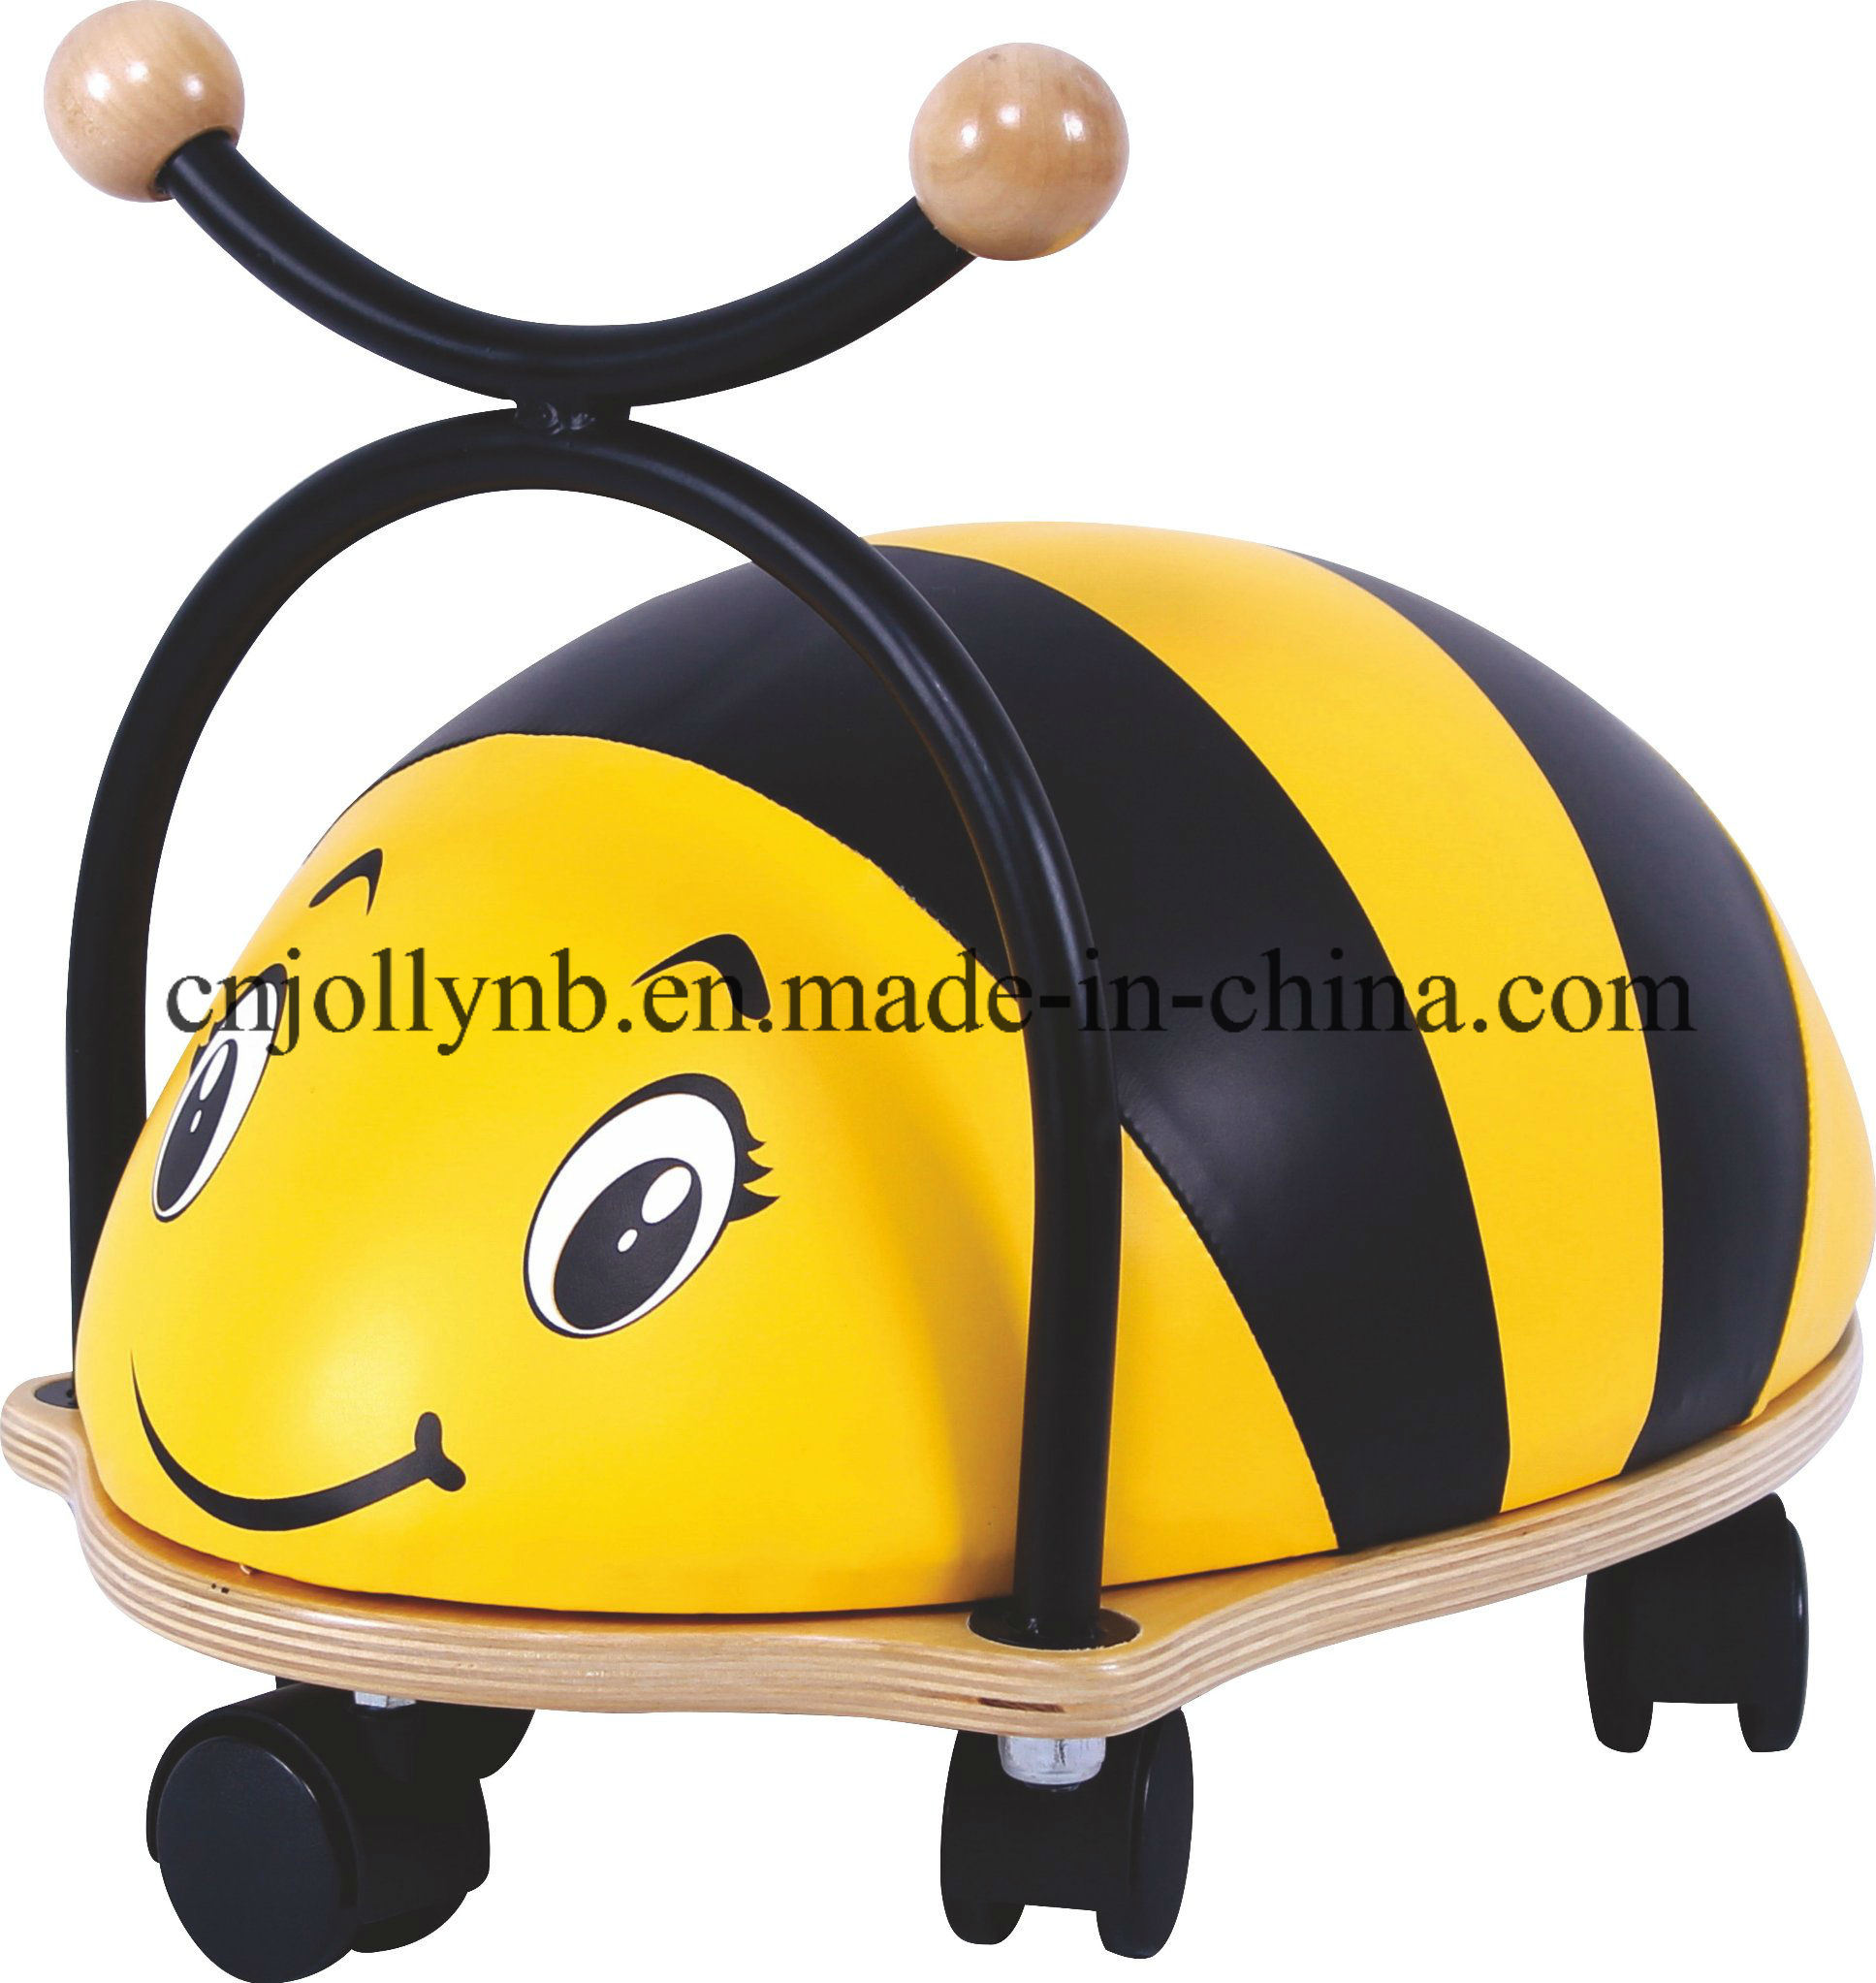 New and Popular Wholesale Kids Baby Walker, Hot Sale Wooden Ride on Bee for Kids